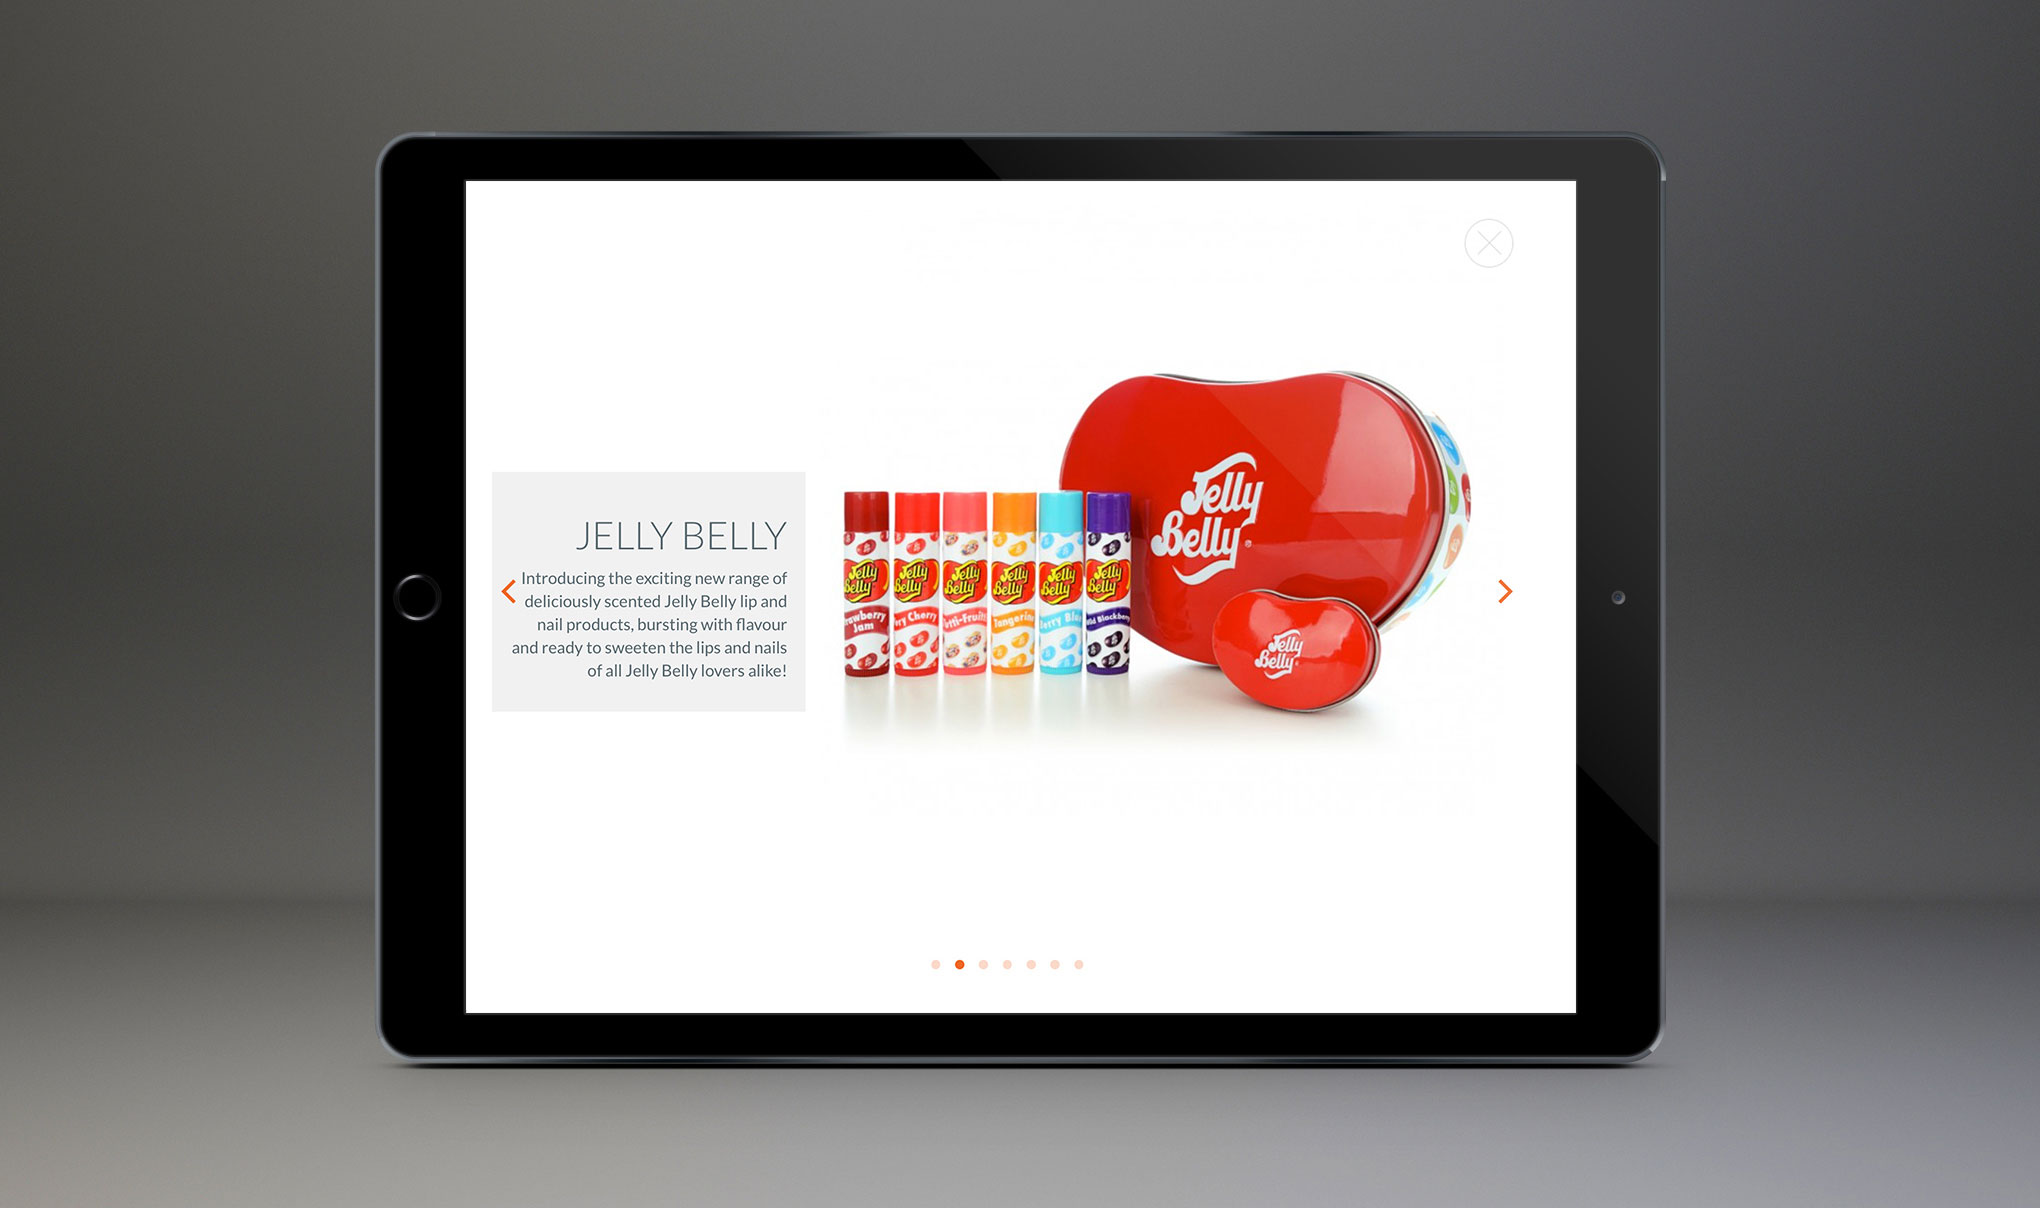 Website design for Amber House Ltd. Image shows Jelly Belly brand page displayed on an iPad. Website designed and developed by - Flipflop Design Ltd.